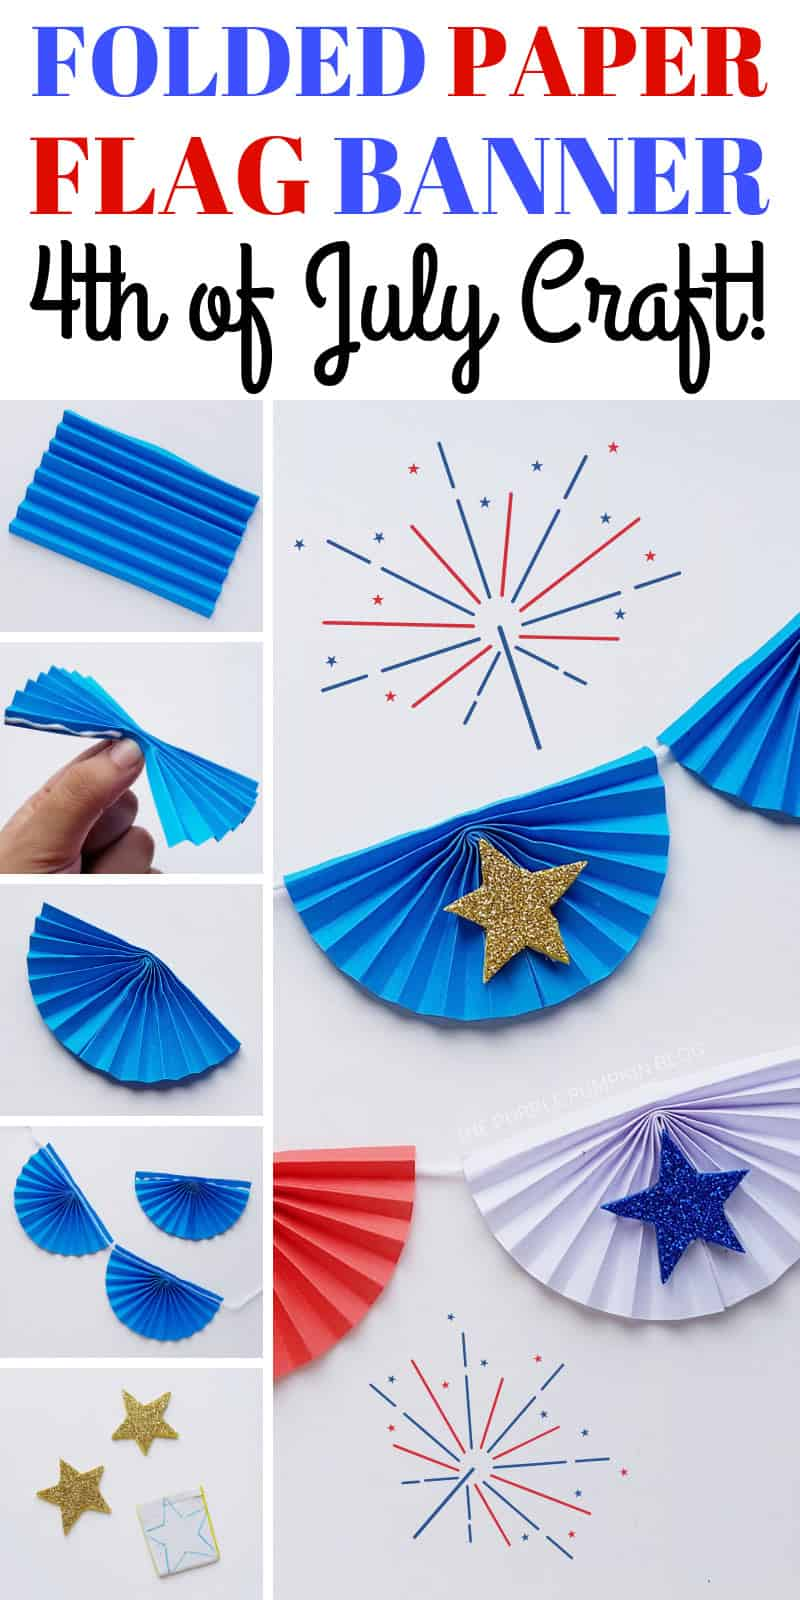 Folded Paper Flag Banner - 4th of July Craft